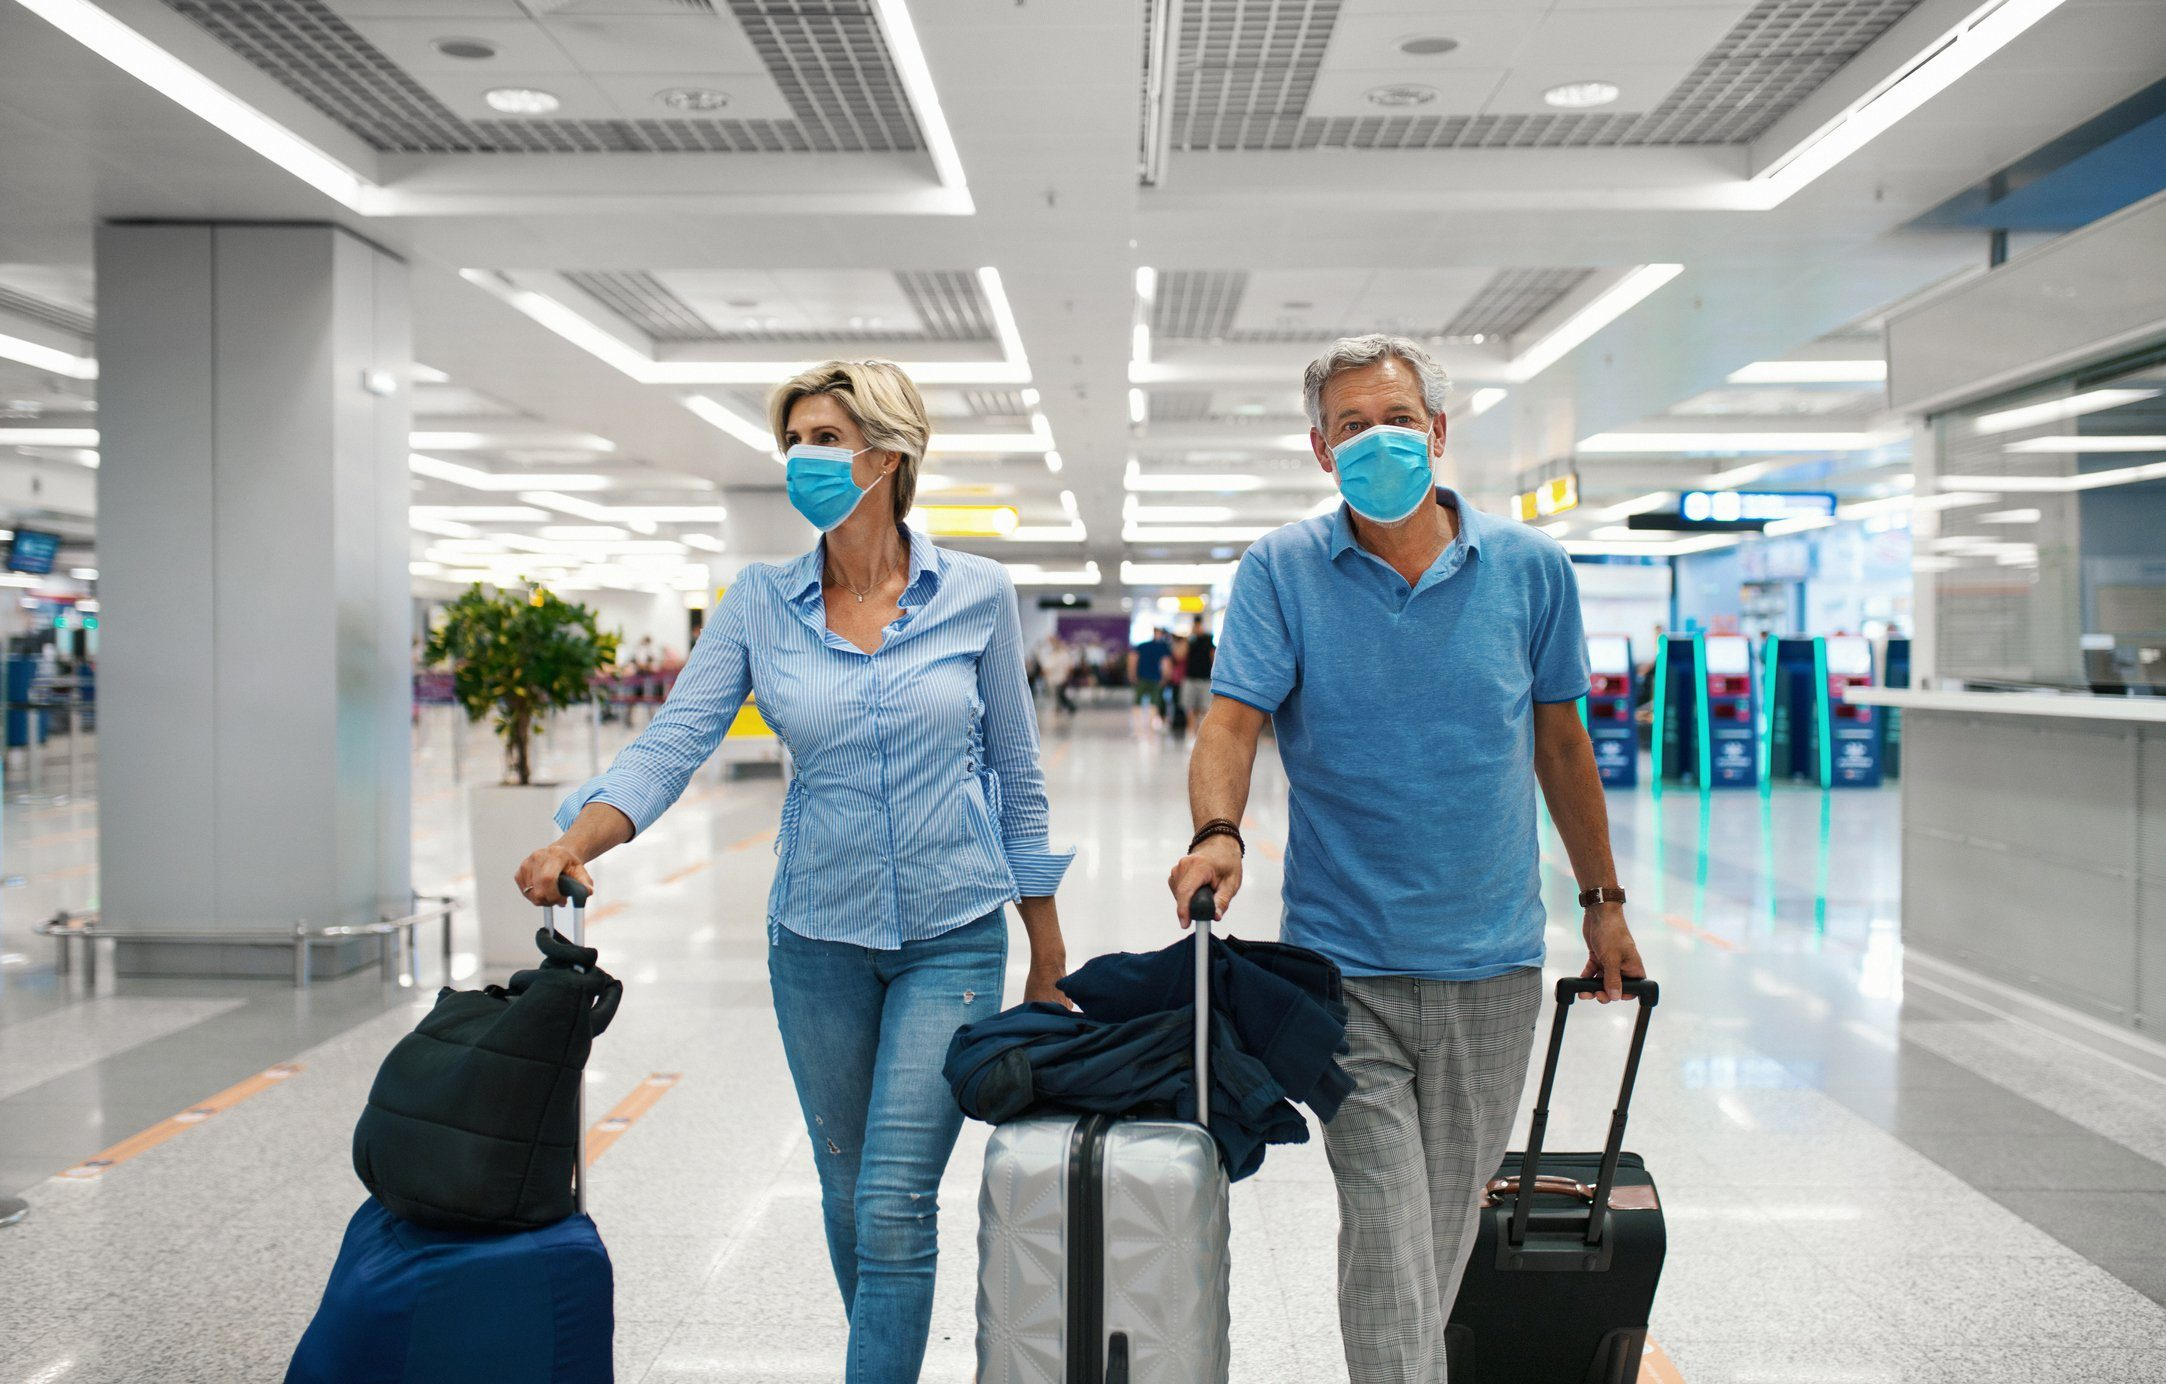 Middle aged couple at an airport during coronavirus pandemic.